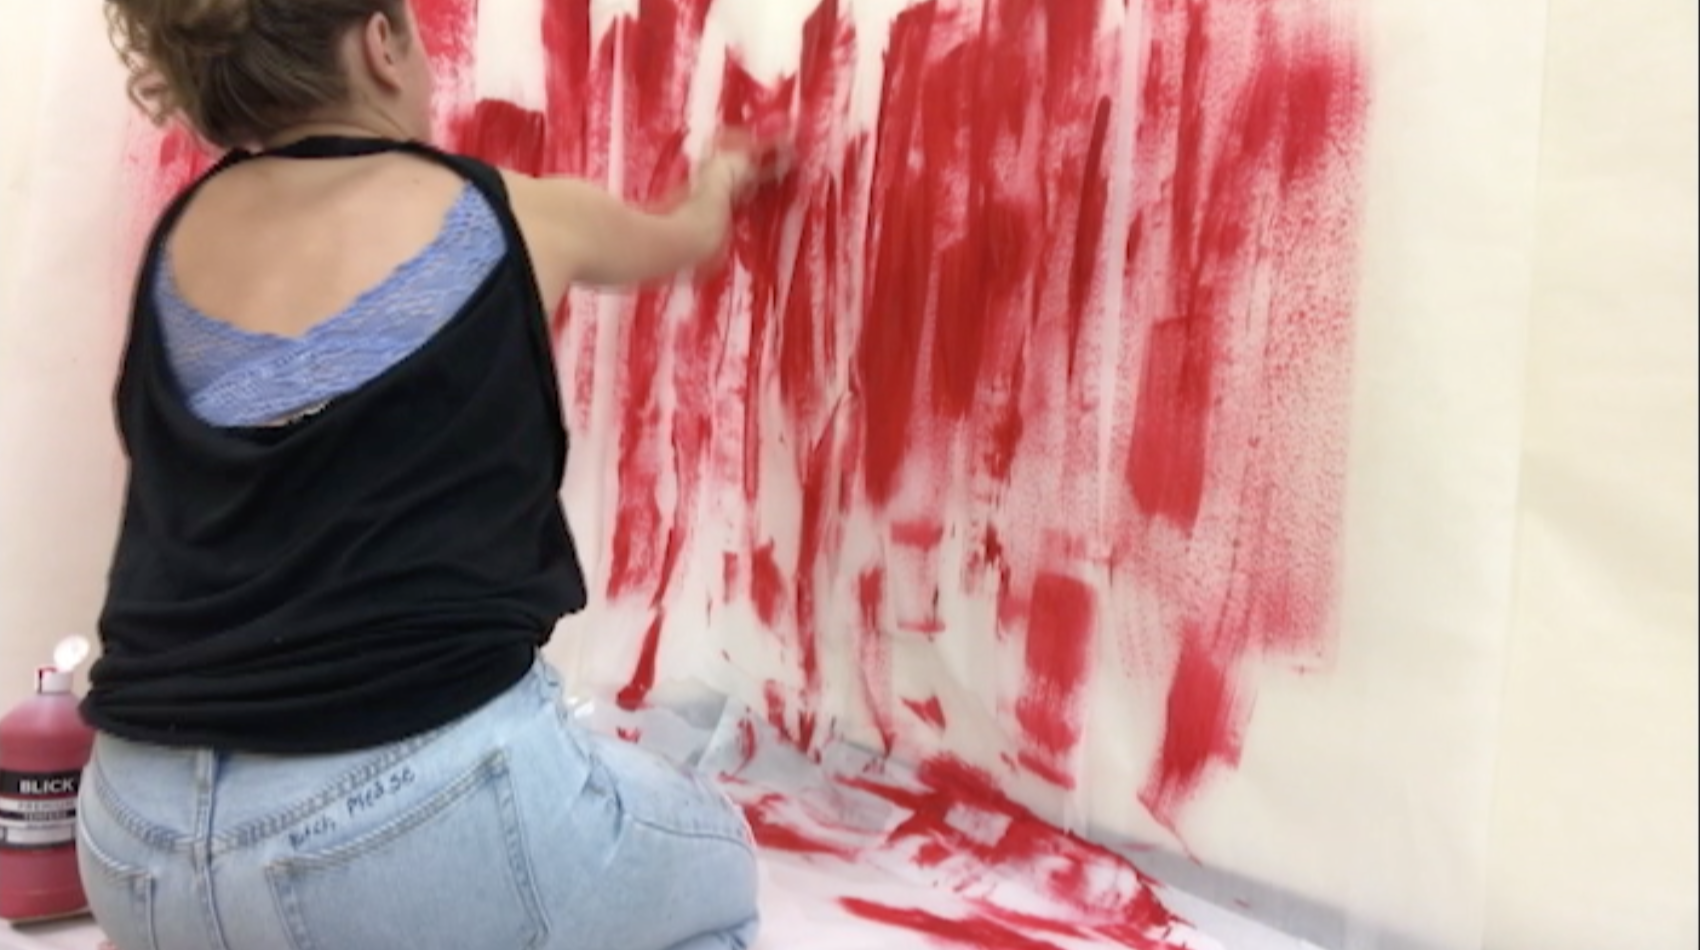 Fetishing Over Red. Art Video